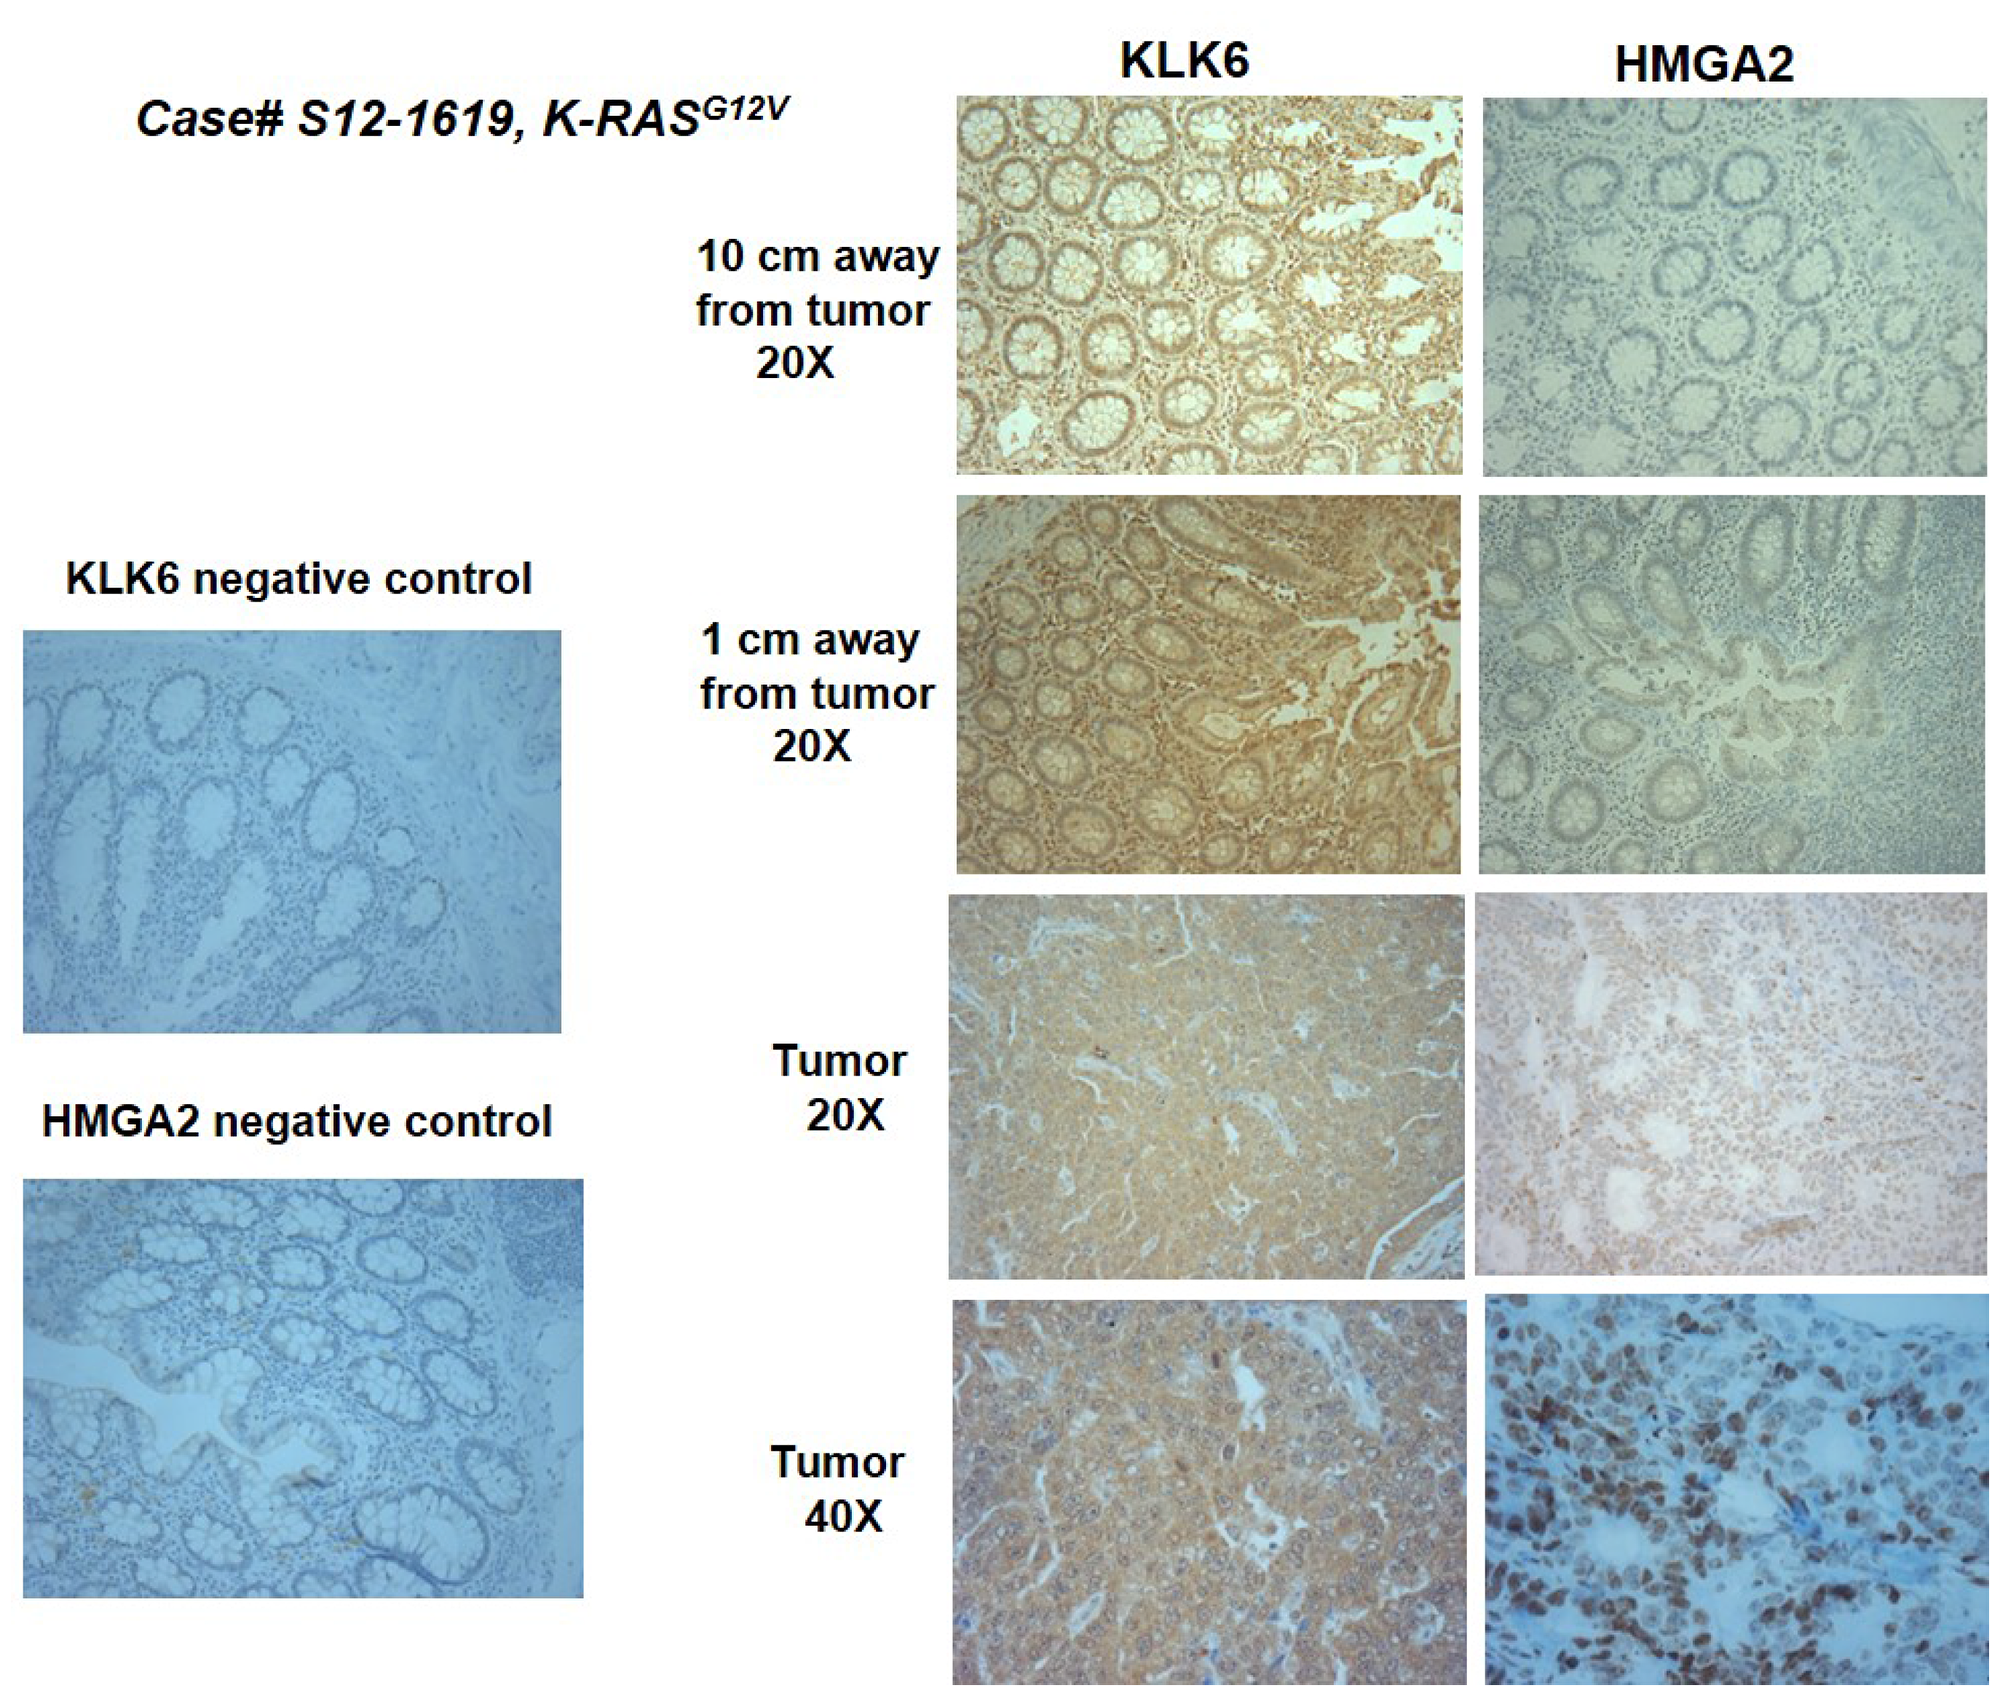 Representative images of KLK6 and HMGA2 IHC staining in the surgical material of a colon cancer patient.